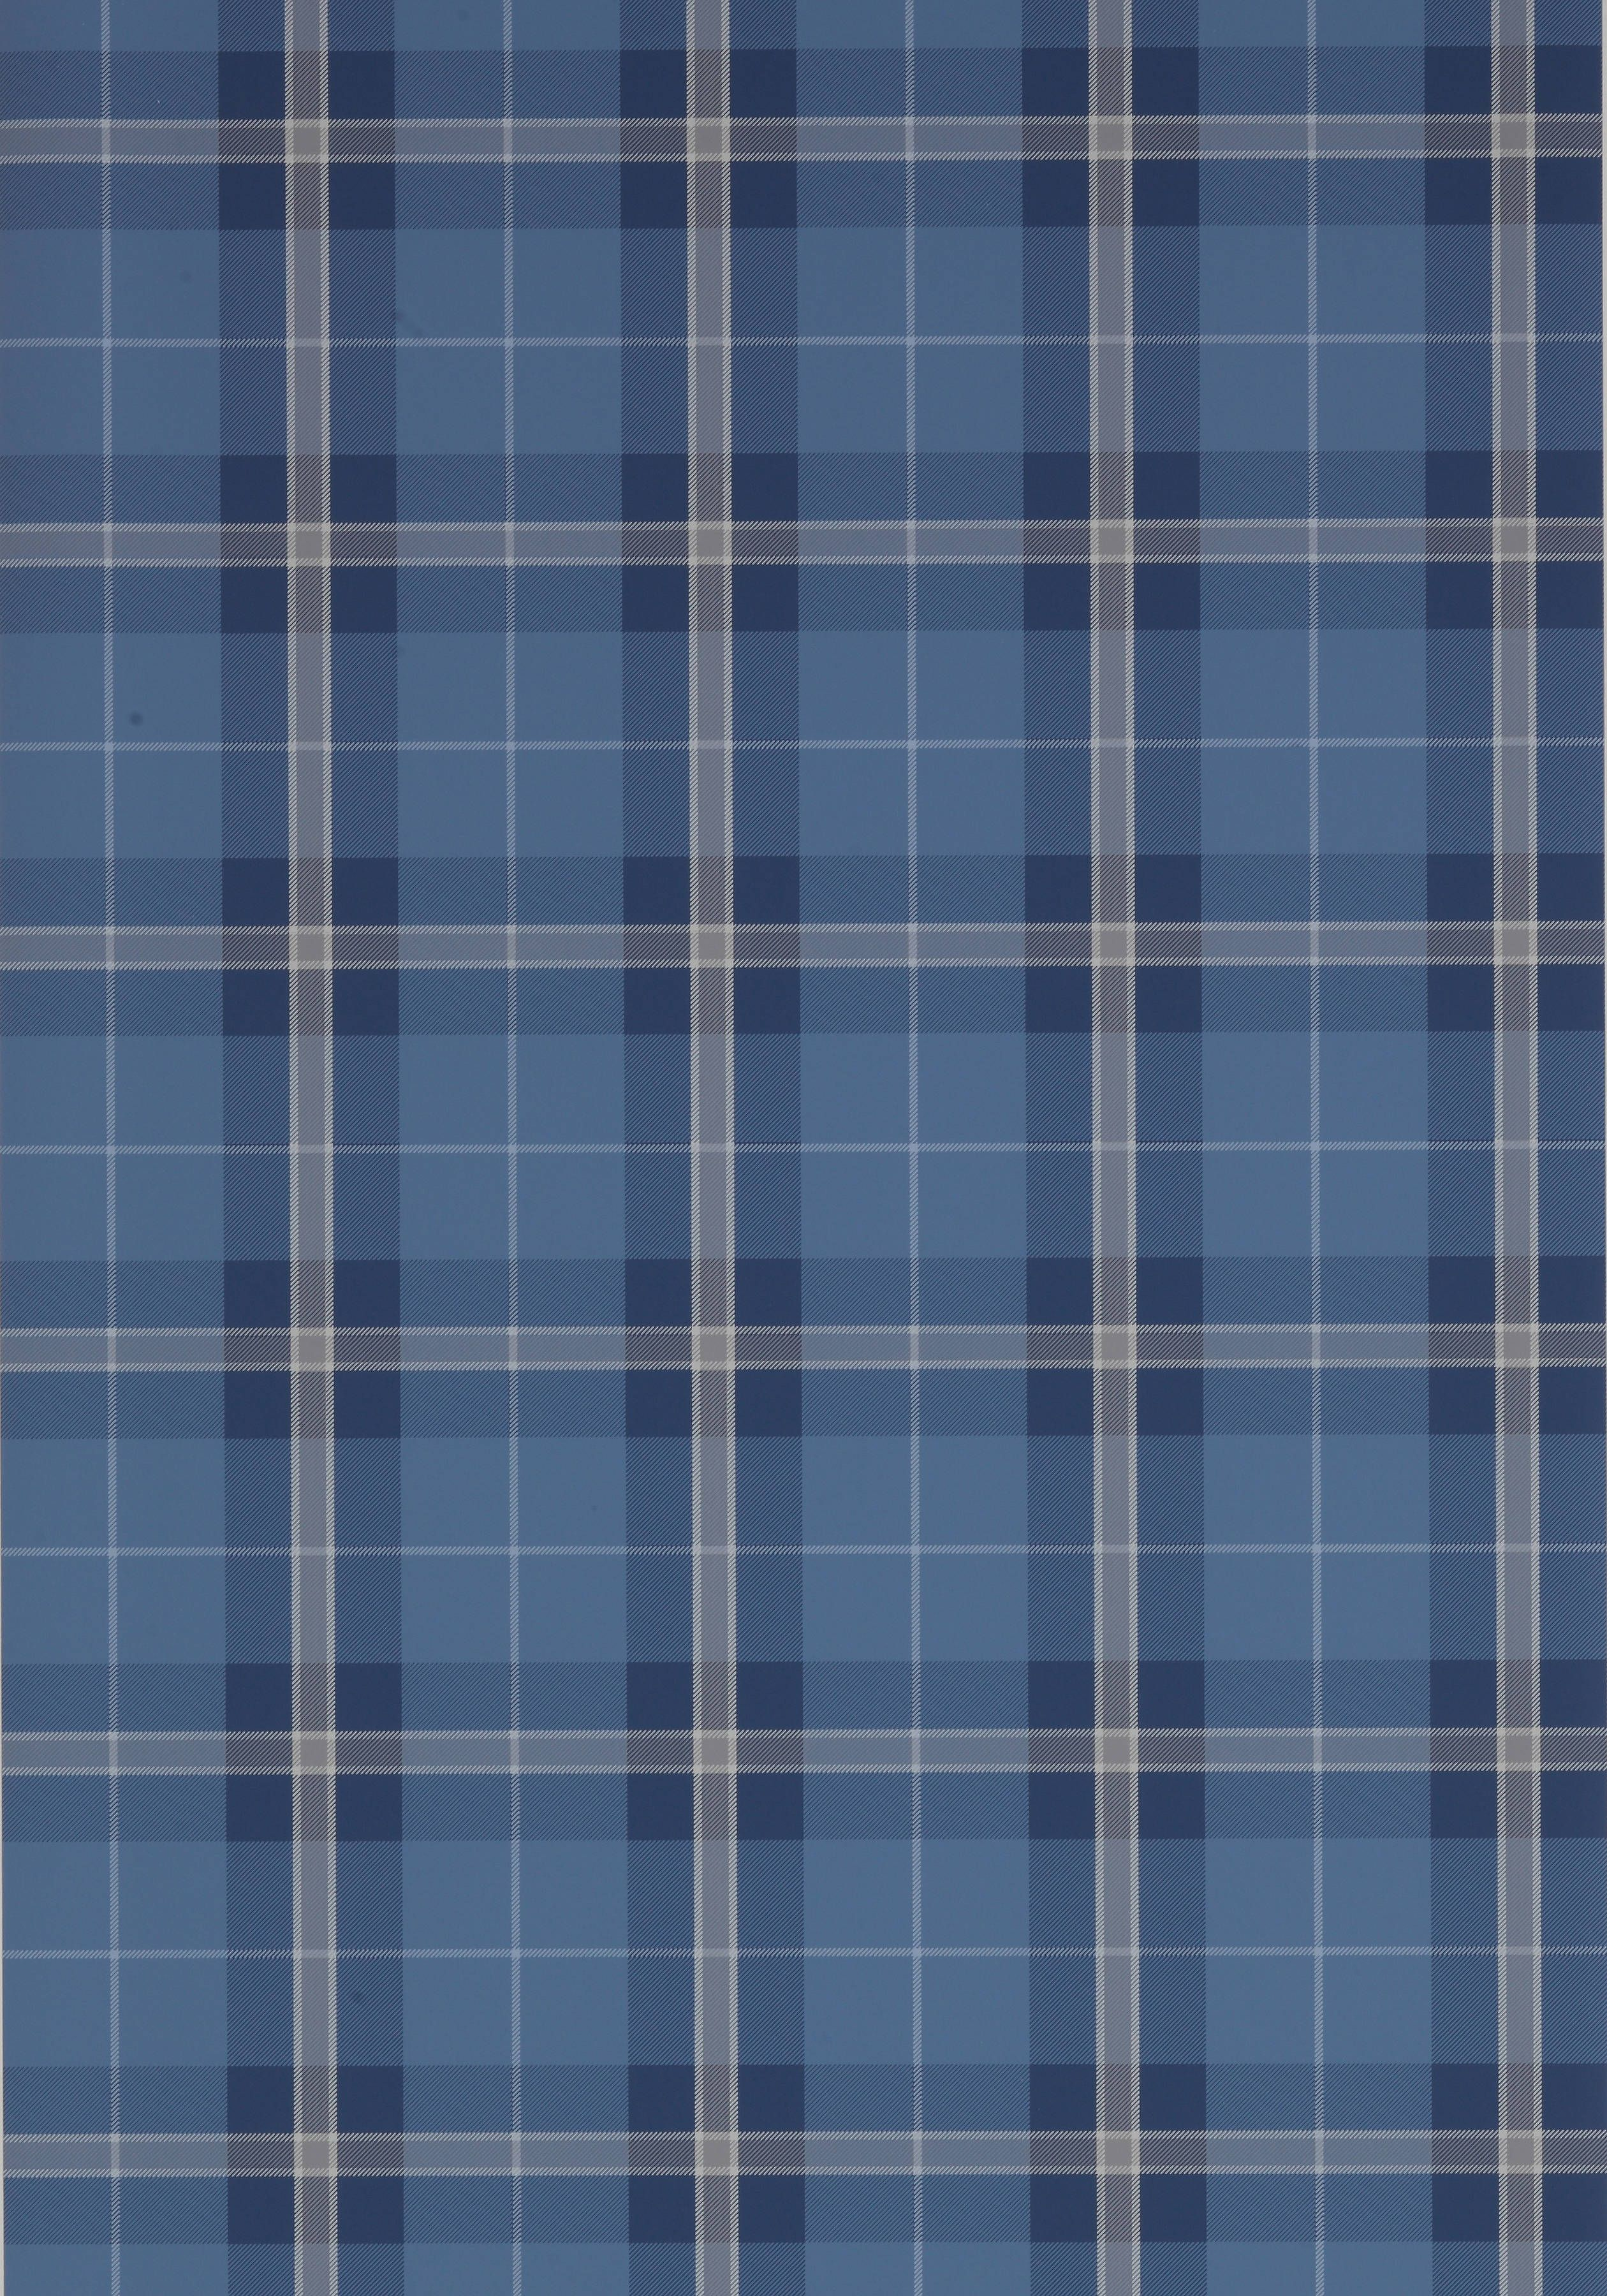 Winslow Plaid Navy T Collection Menswear Resource